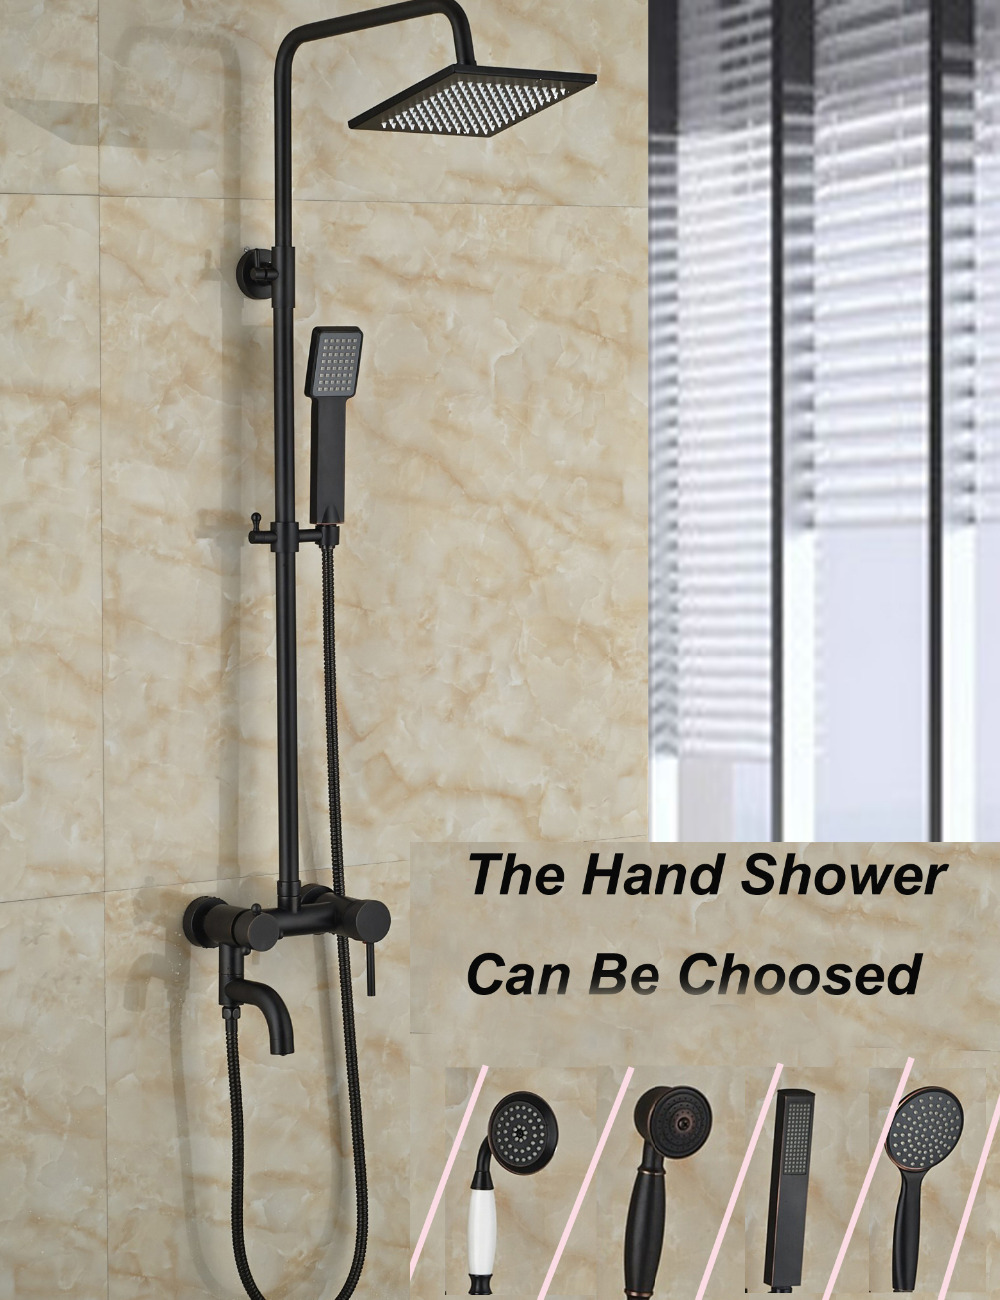 Wholesale And Retail Oil Rubbed Bronze Wall Mounted Square Rain Shower Head Faucet Tub Spout W/ Hand Shower Sprayer